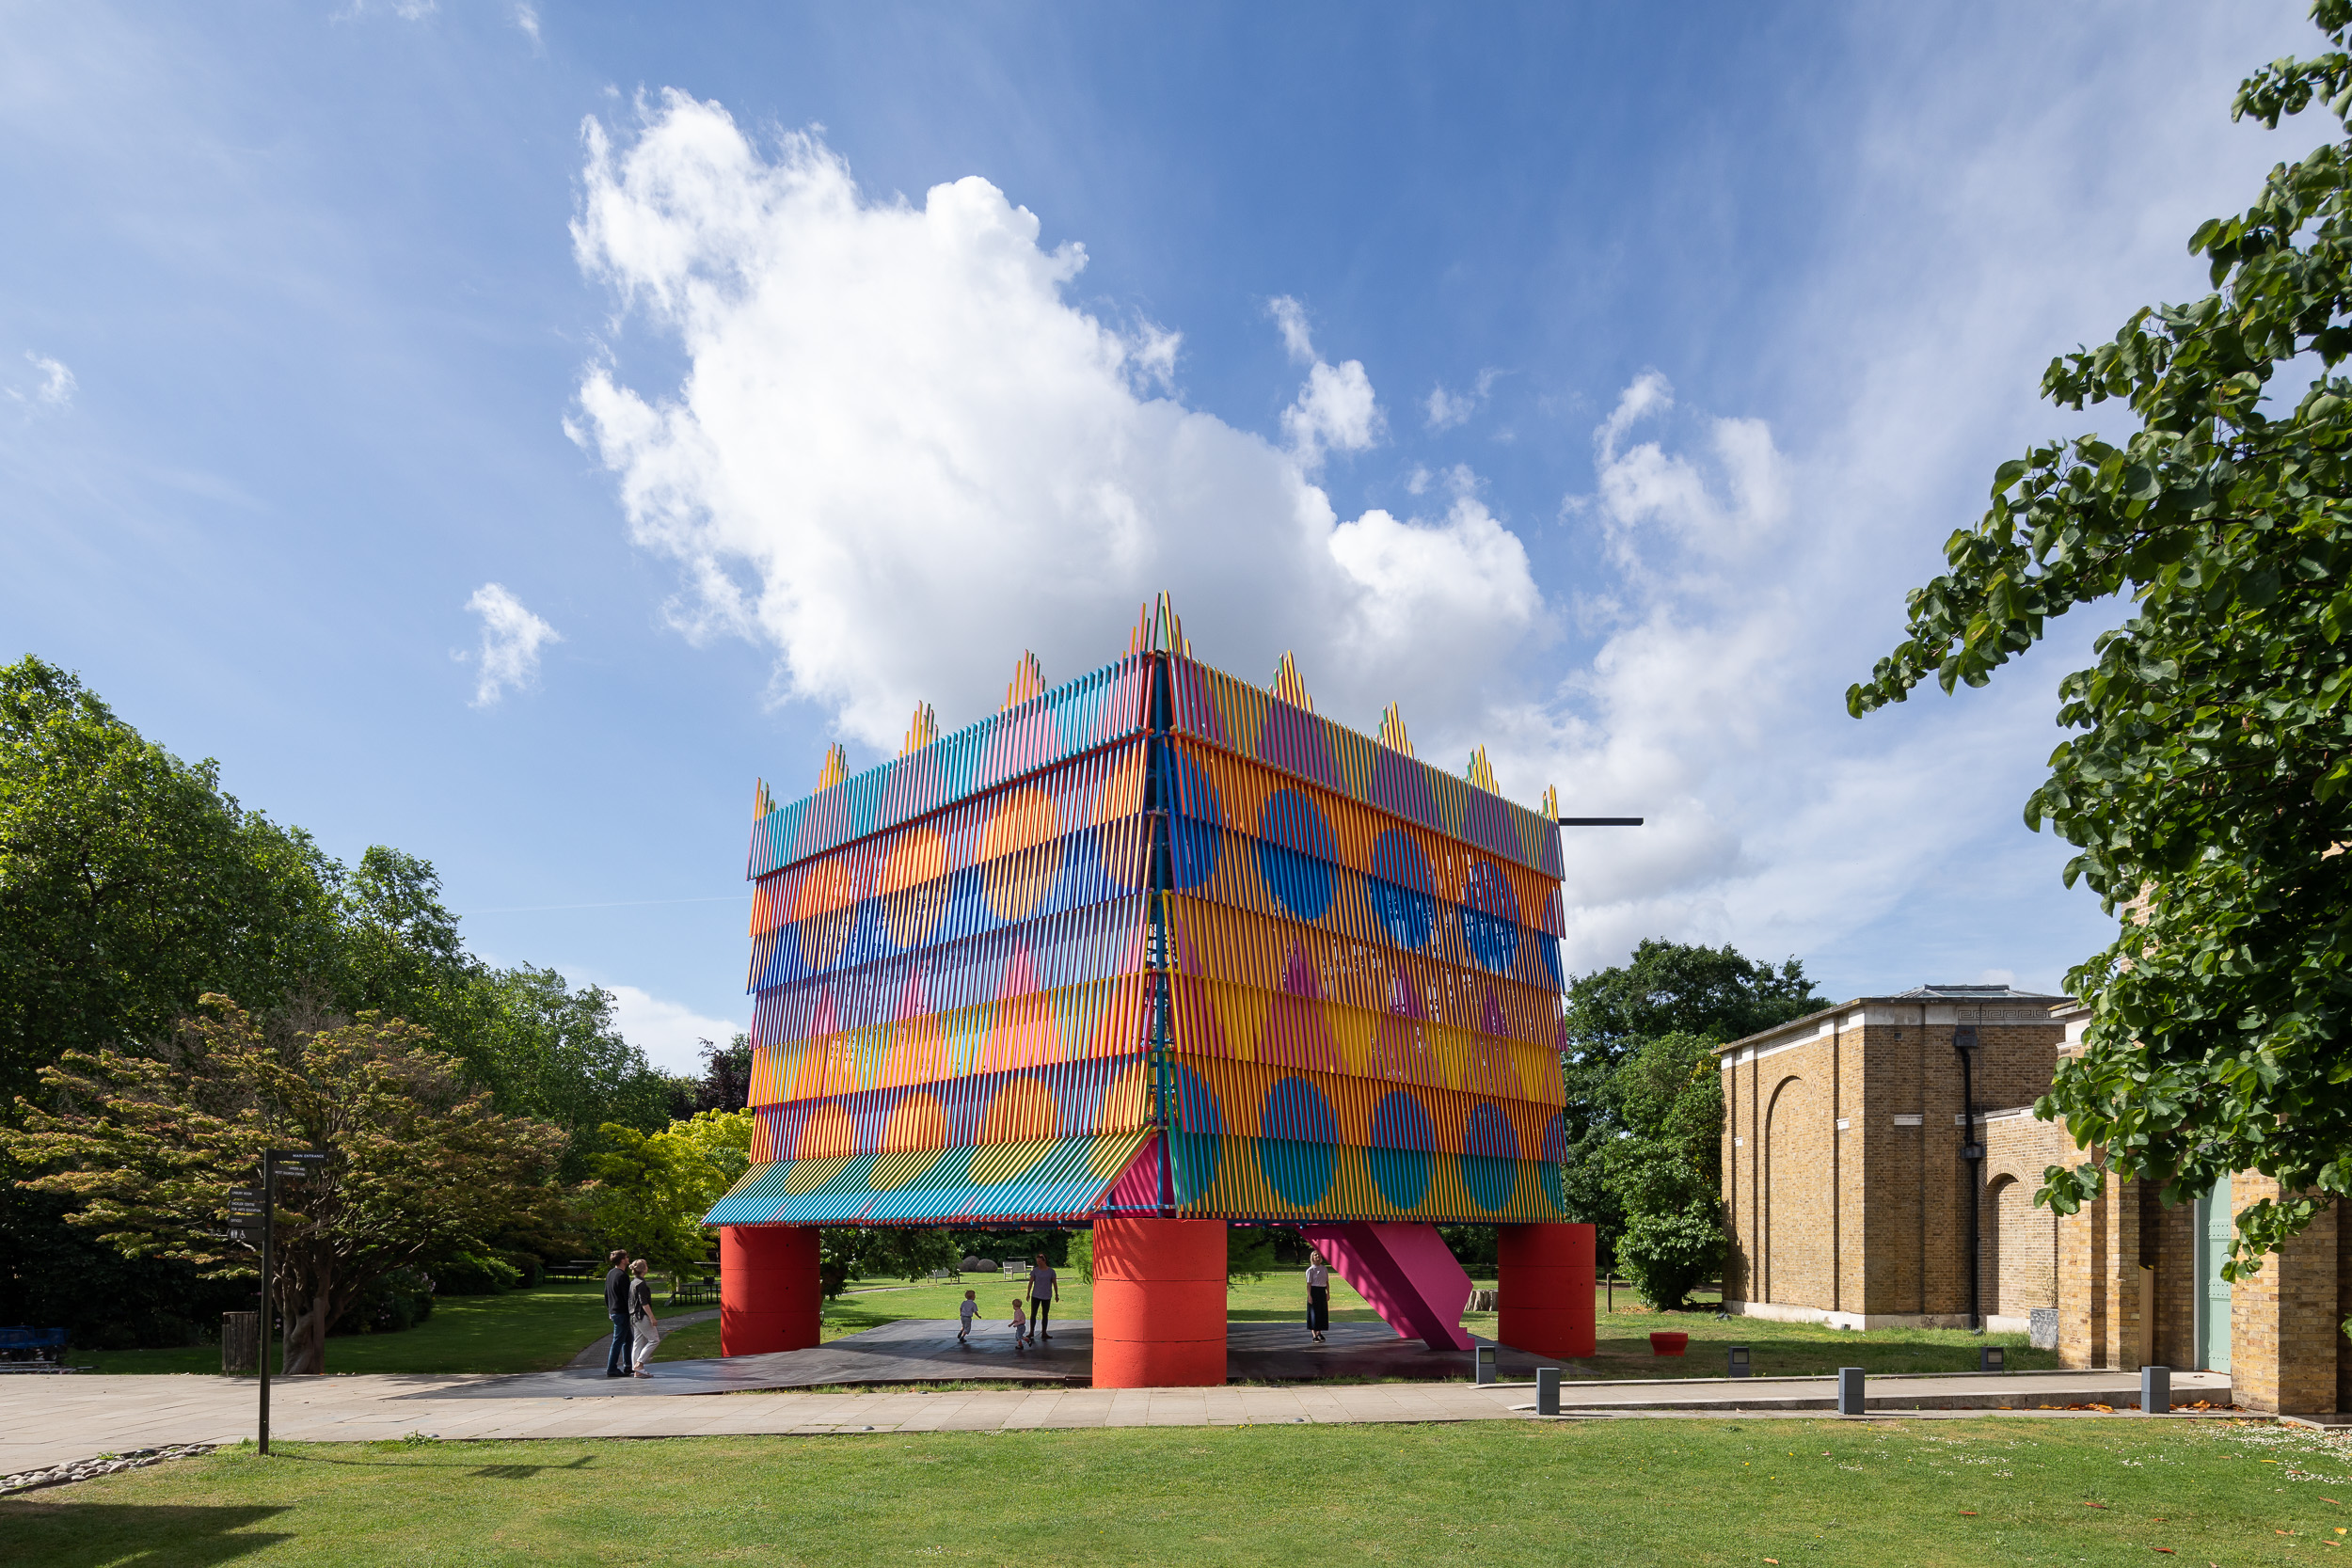 The Colour Palace at Dulwich Picture Gallery | Yinka Ilori & Pricegore